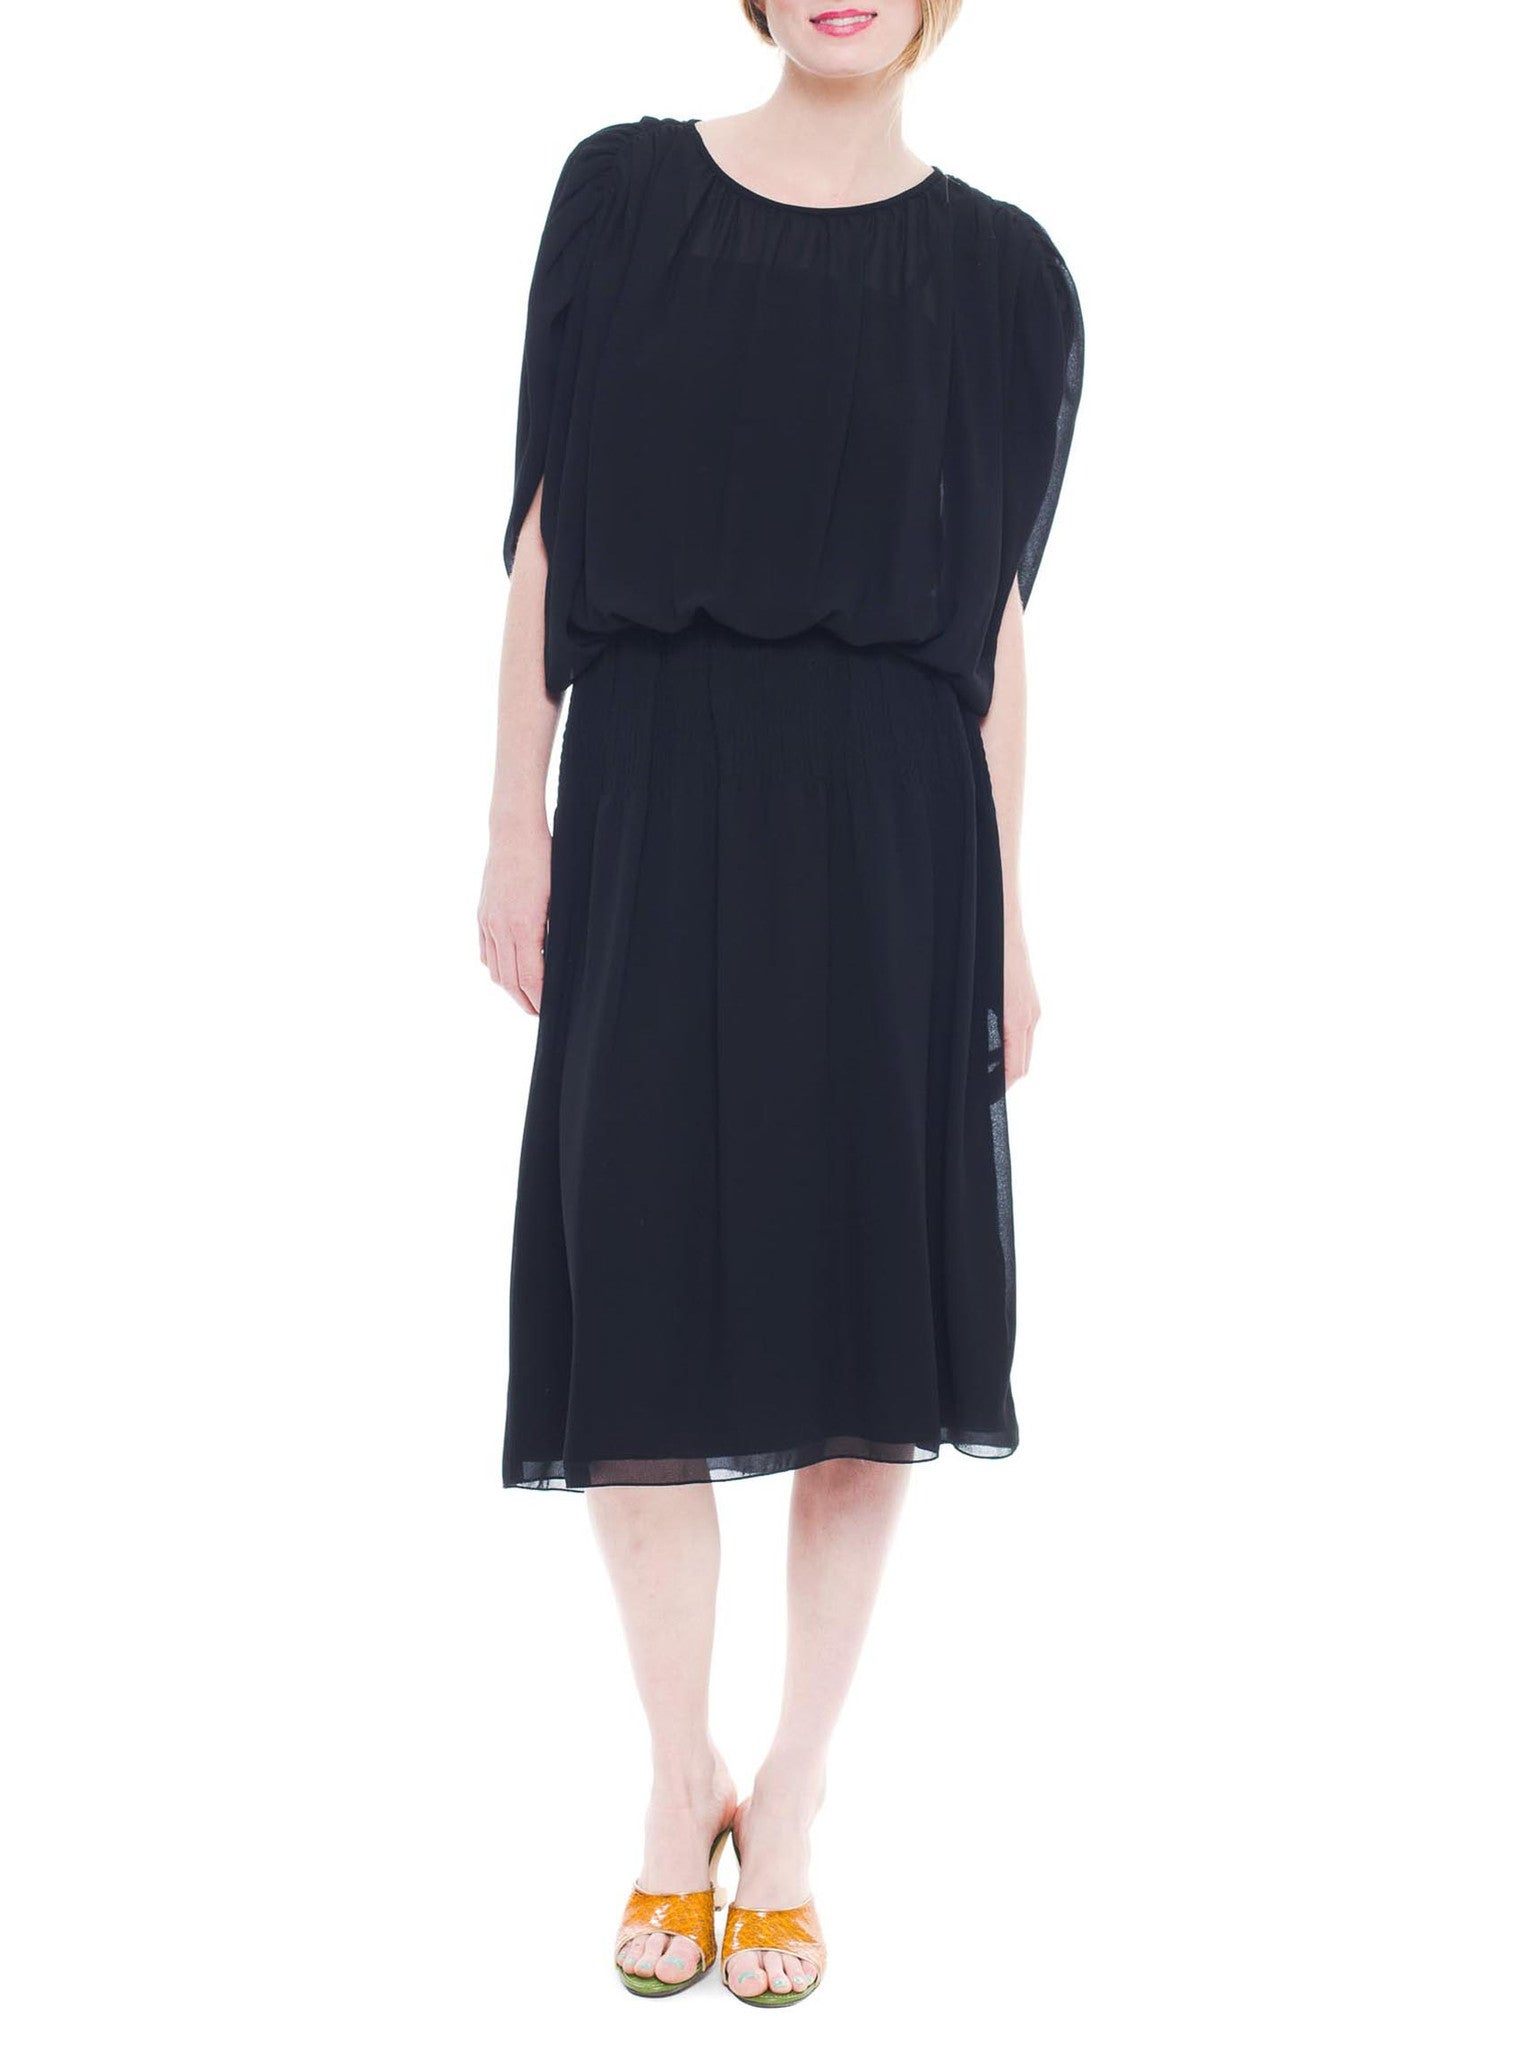 Relaxed And Chic Gauzy Black Pierre Cardin Dress